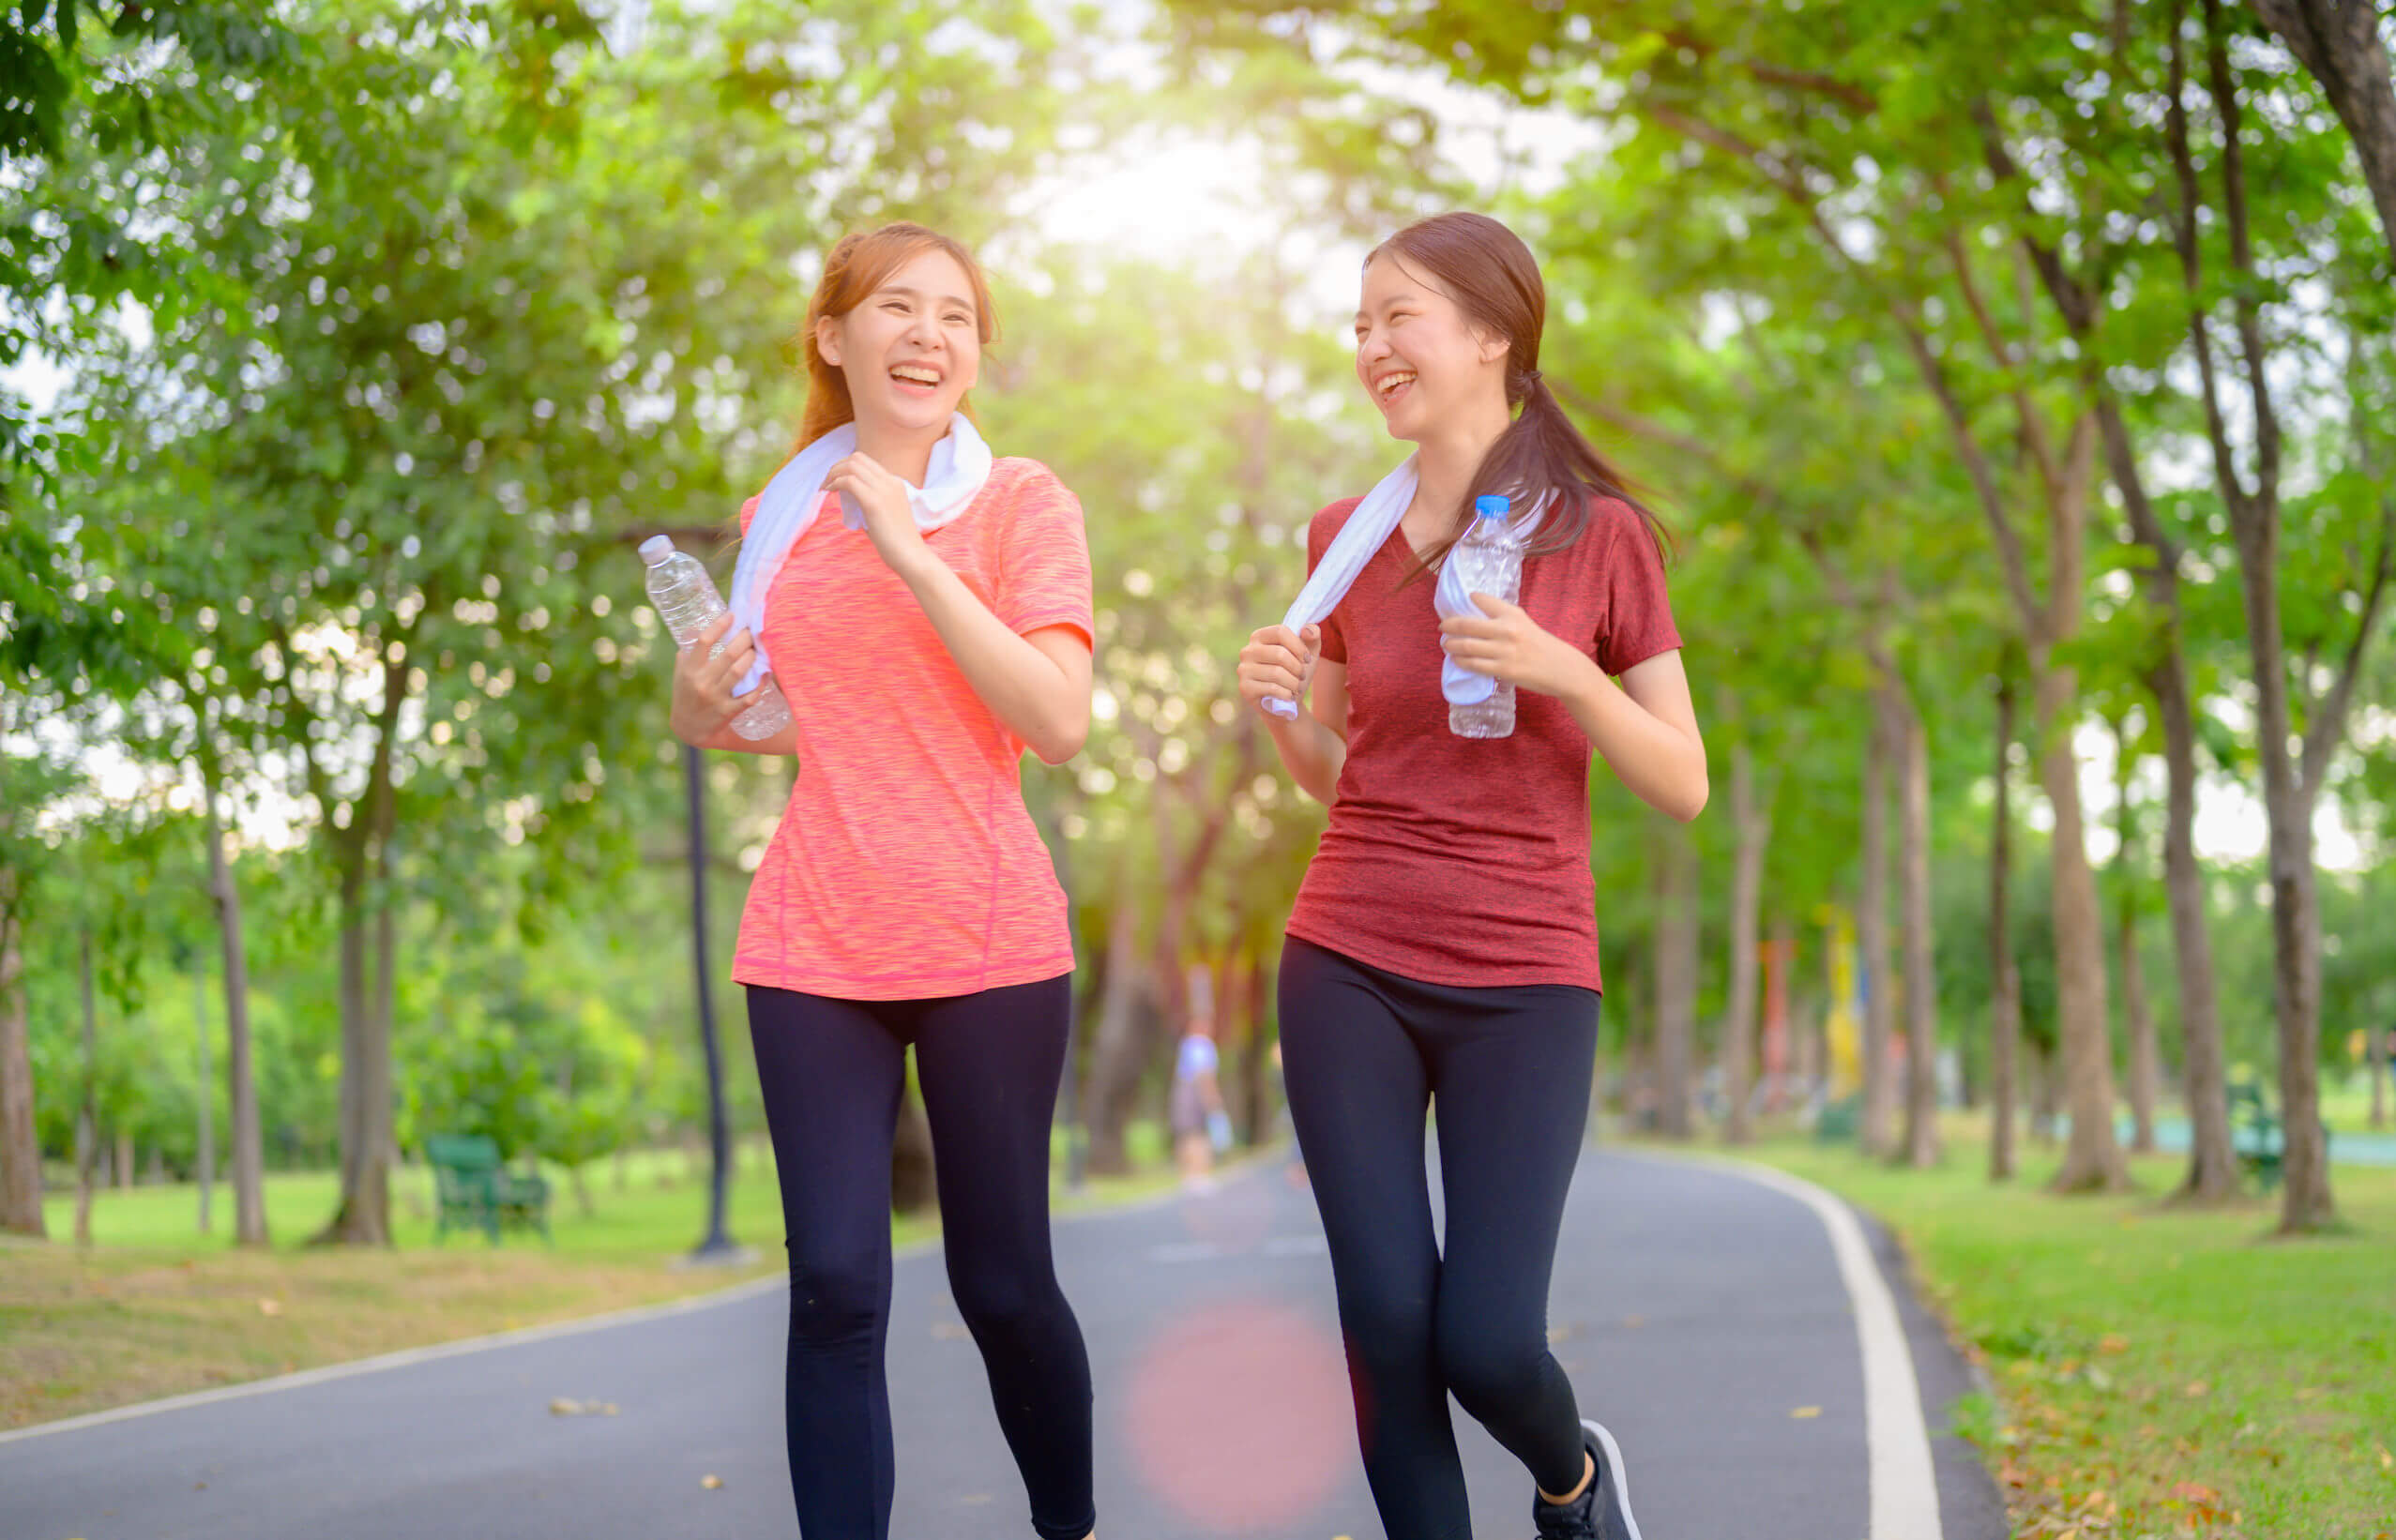 The psychological benefits of running are manifold.